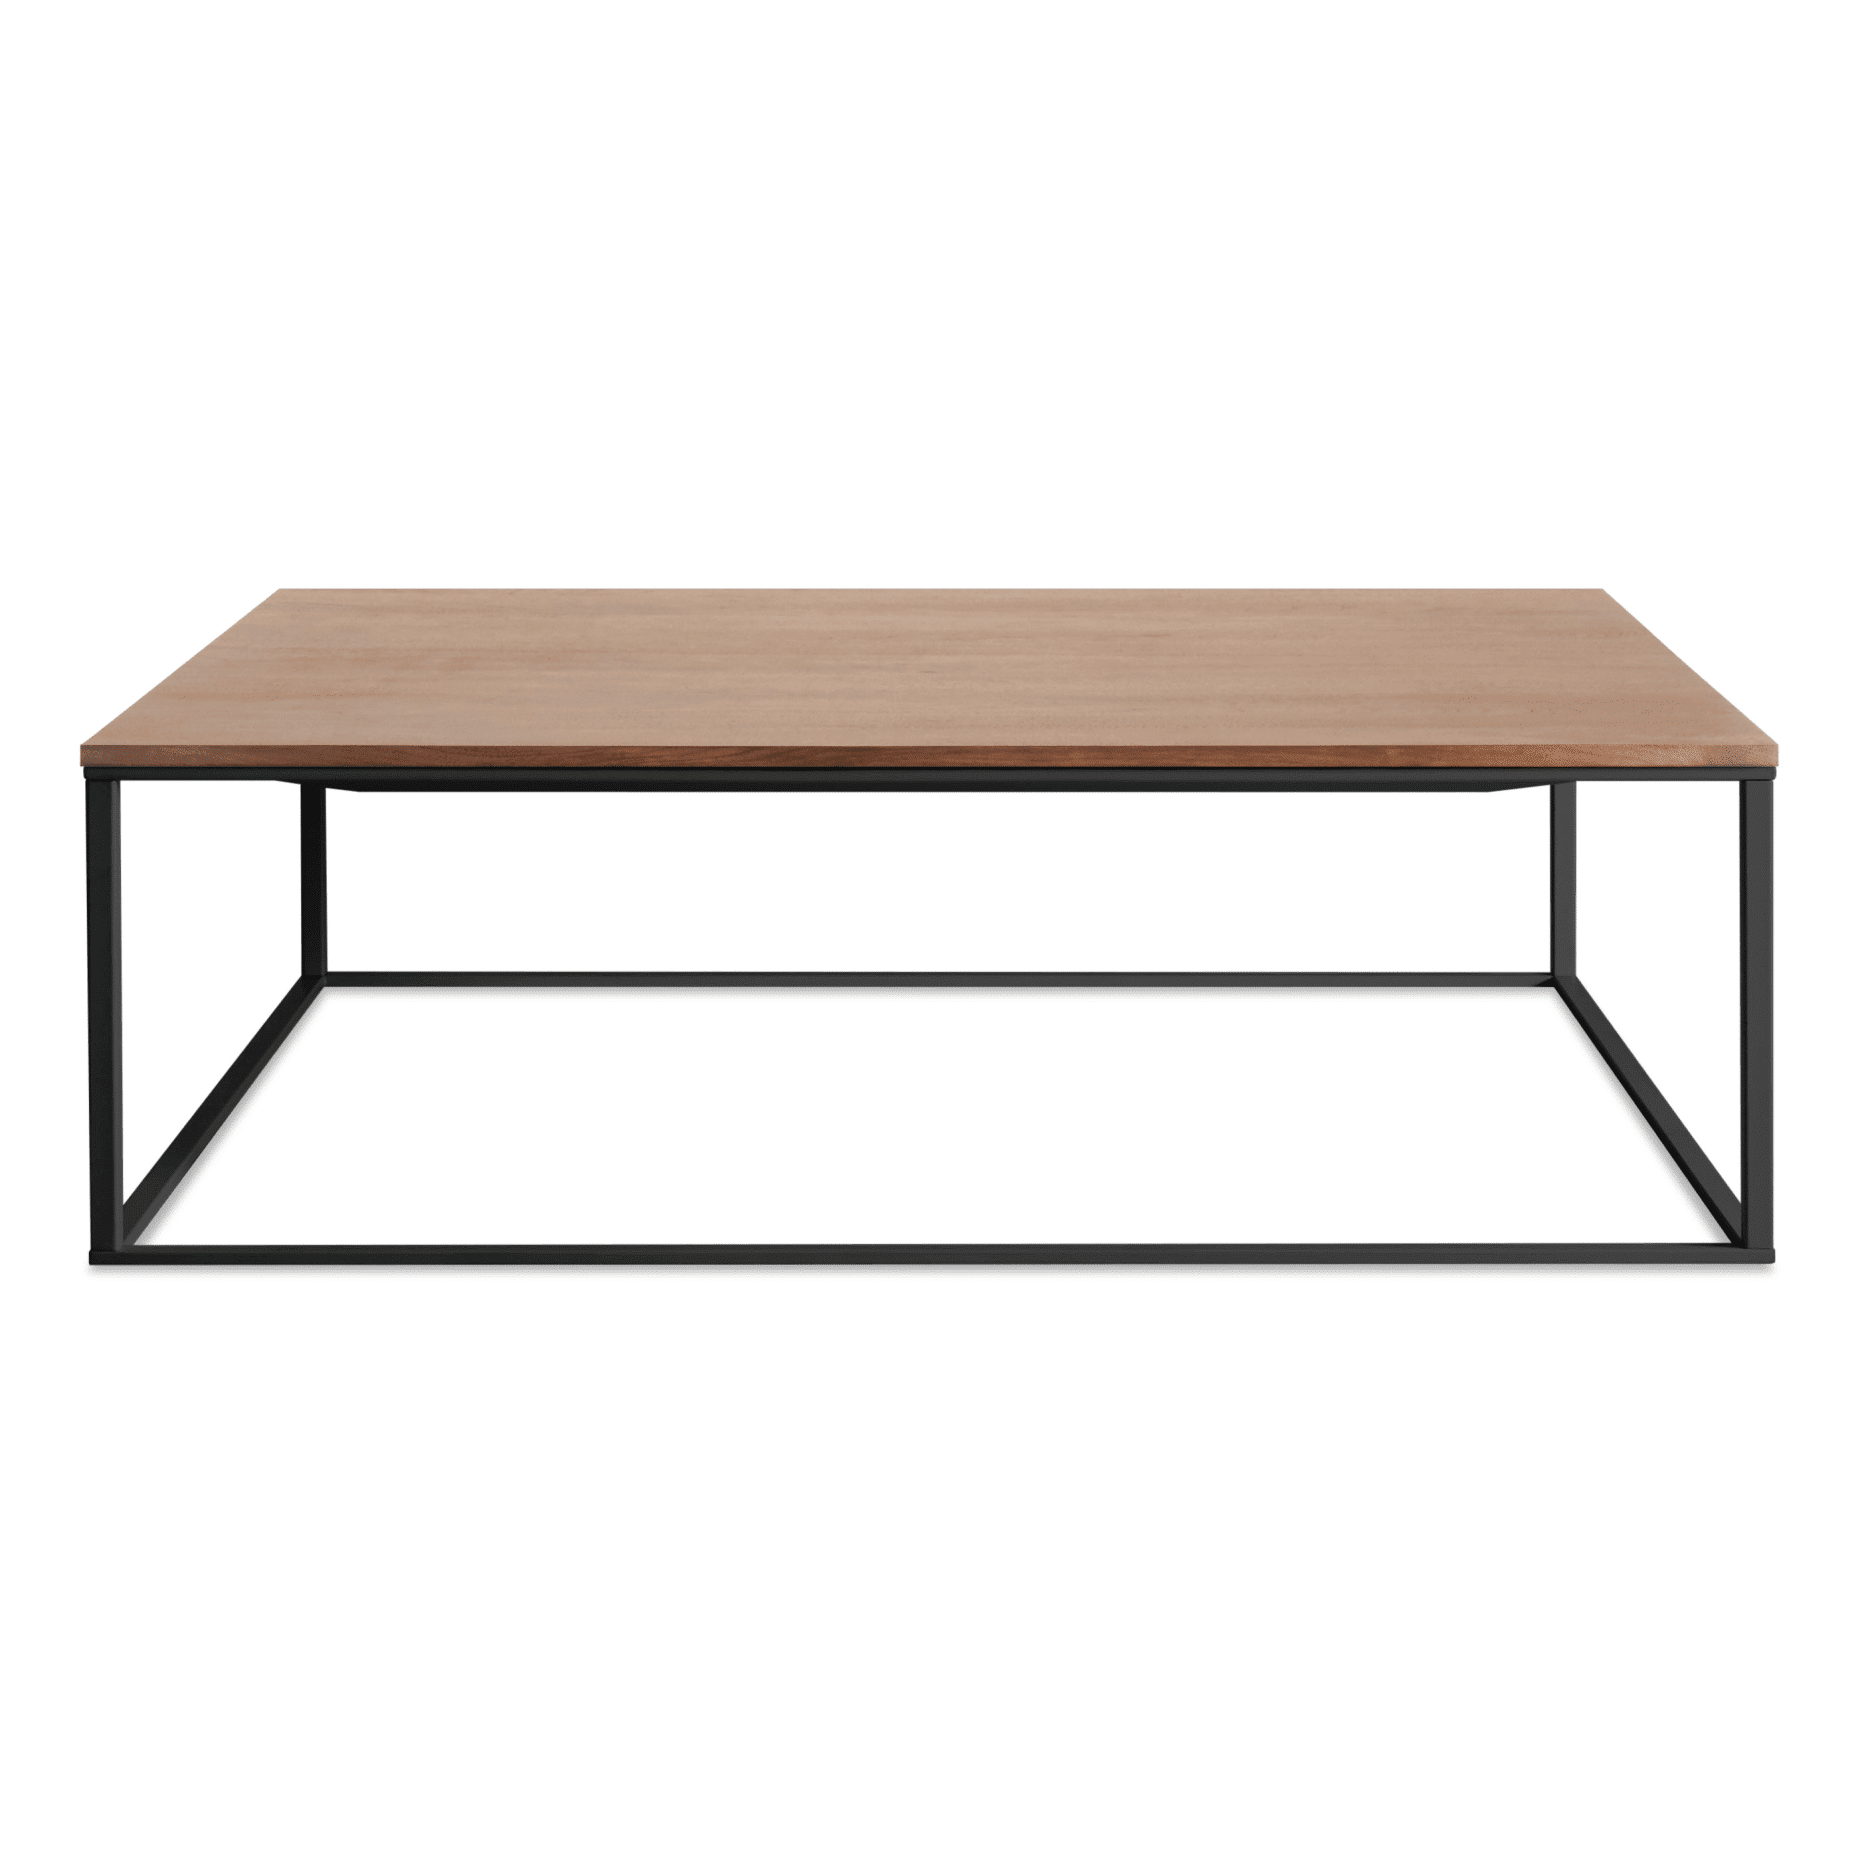 mn1 sqcfbk wl minimalista square coffee table black walnut